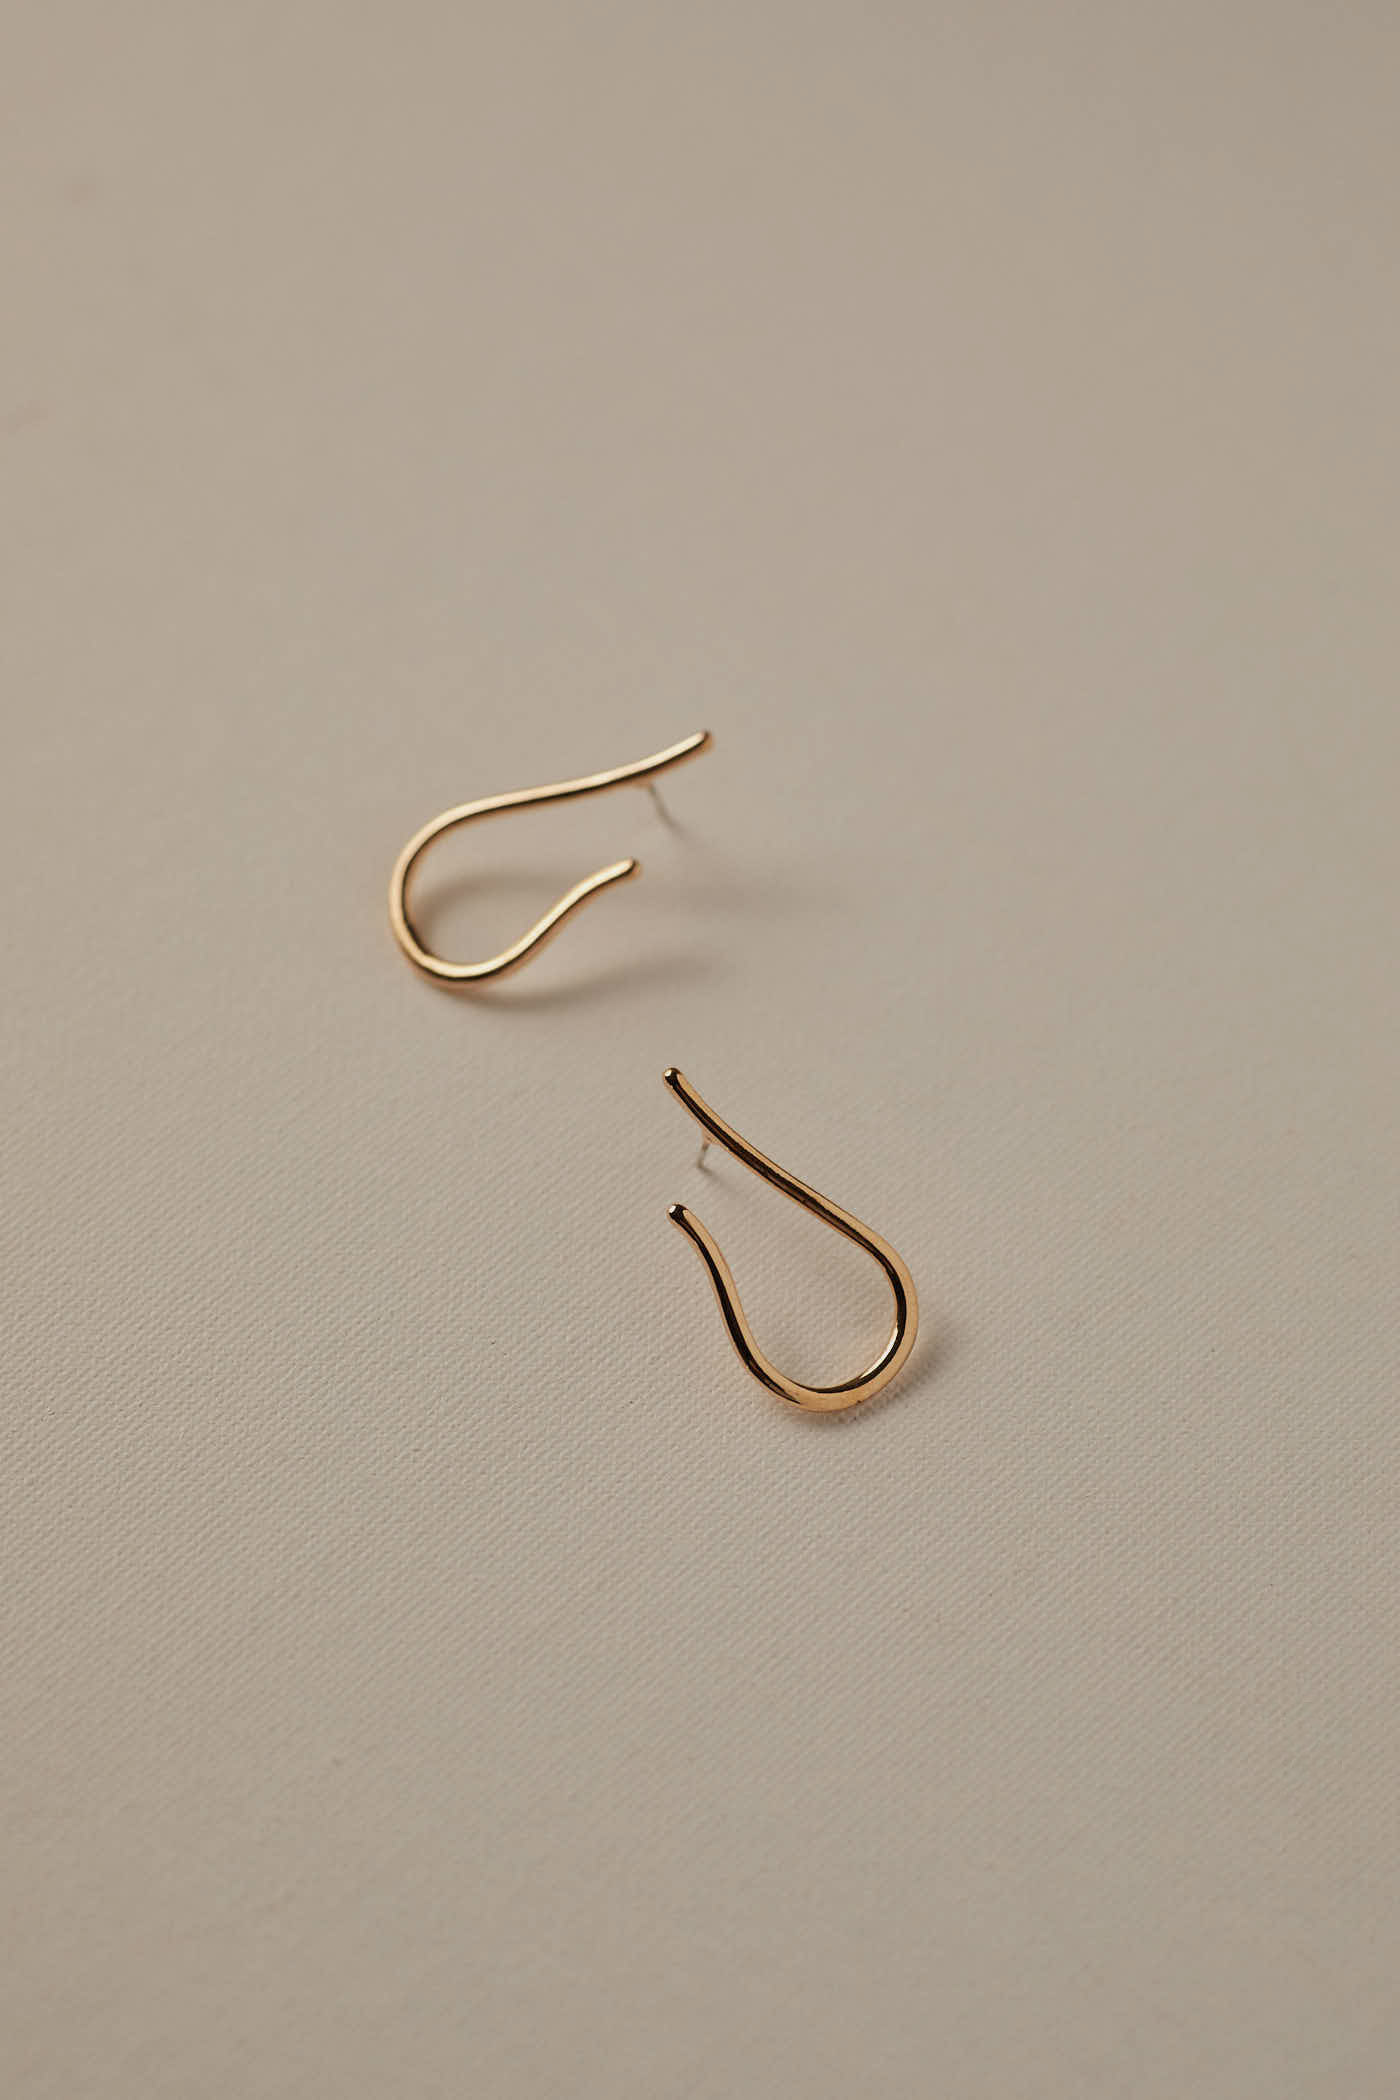 Olaya Earrings